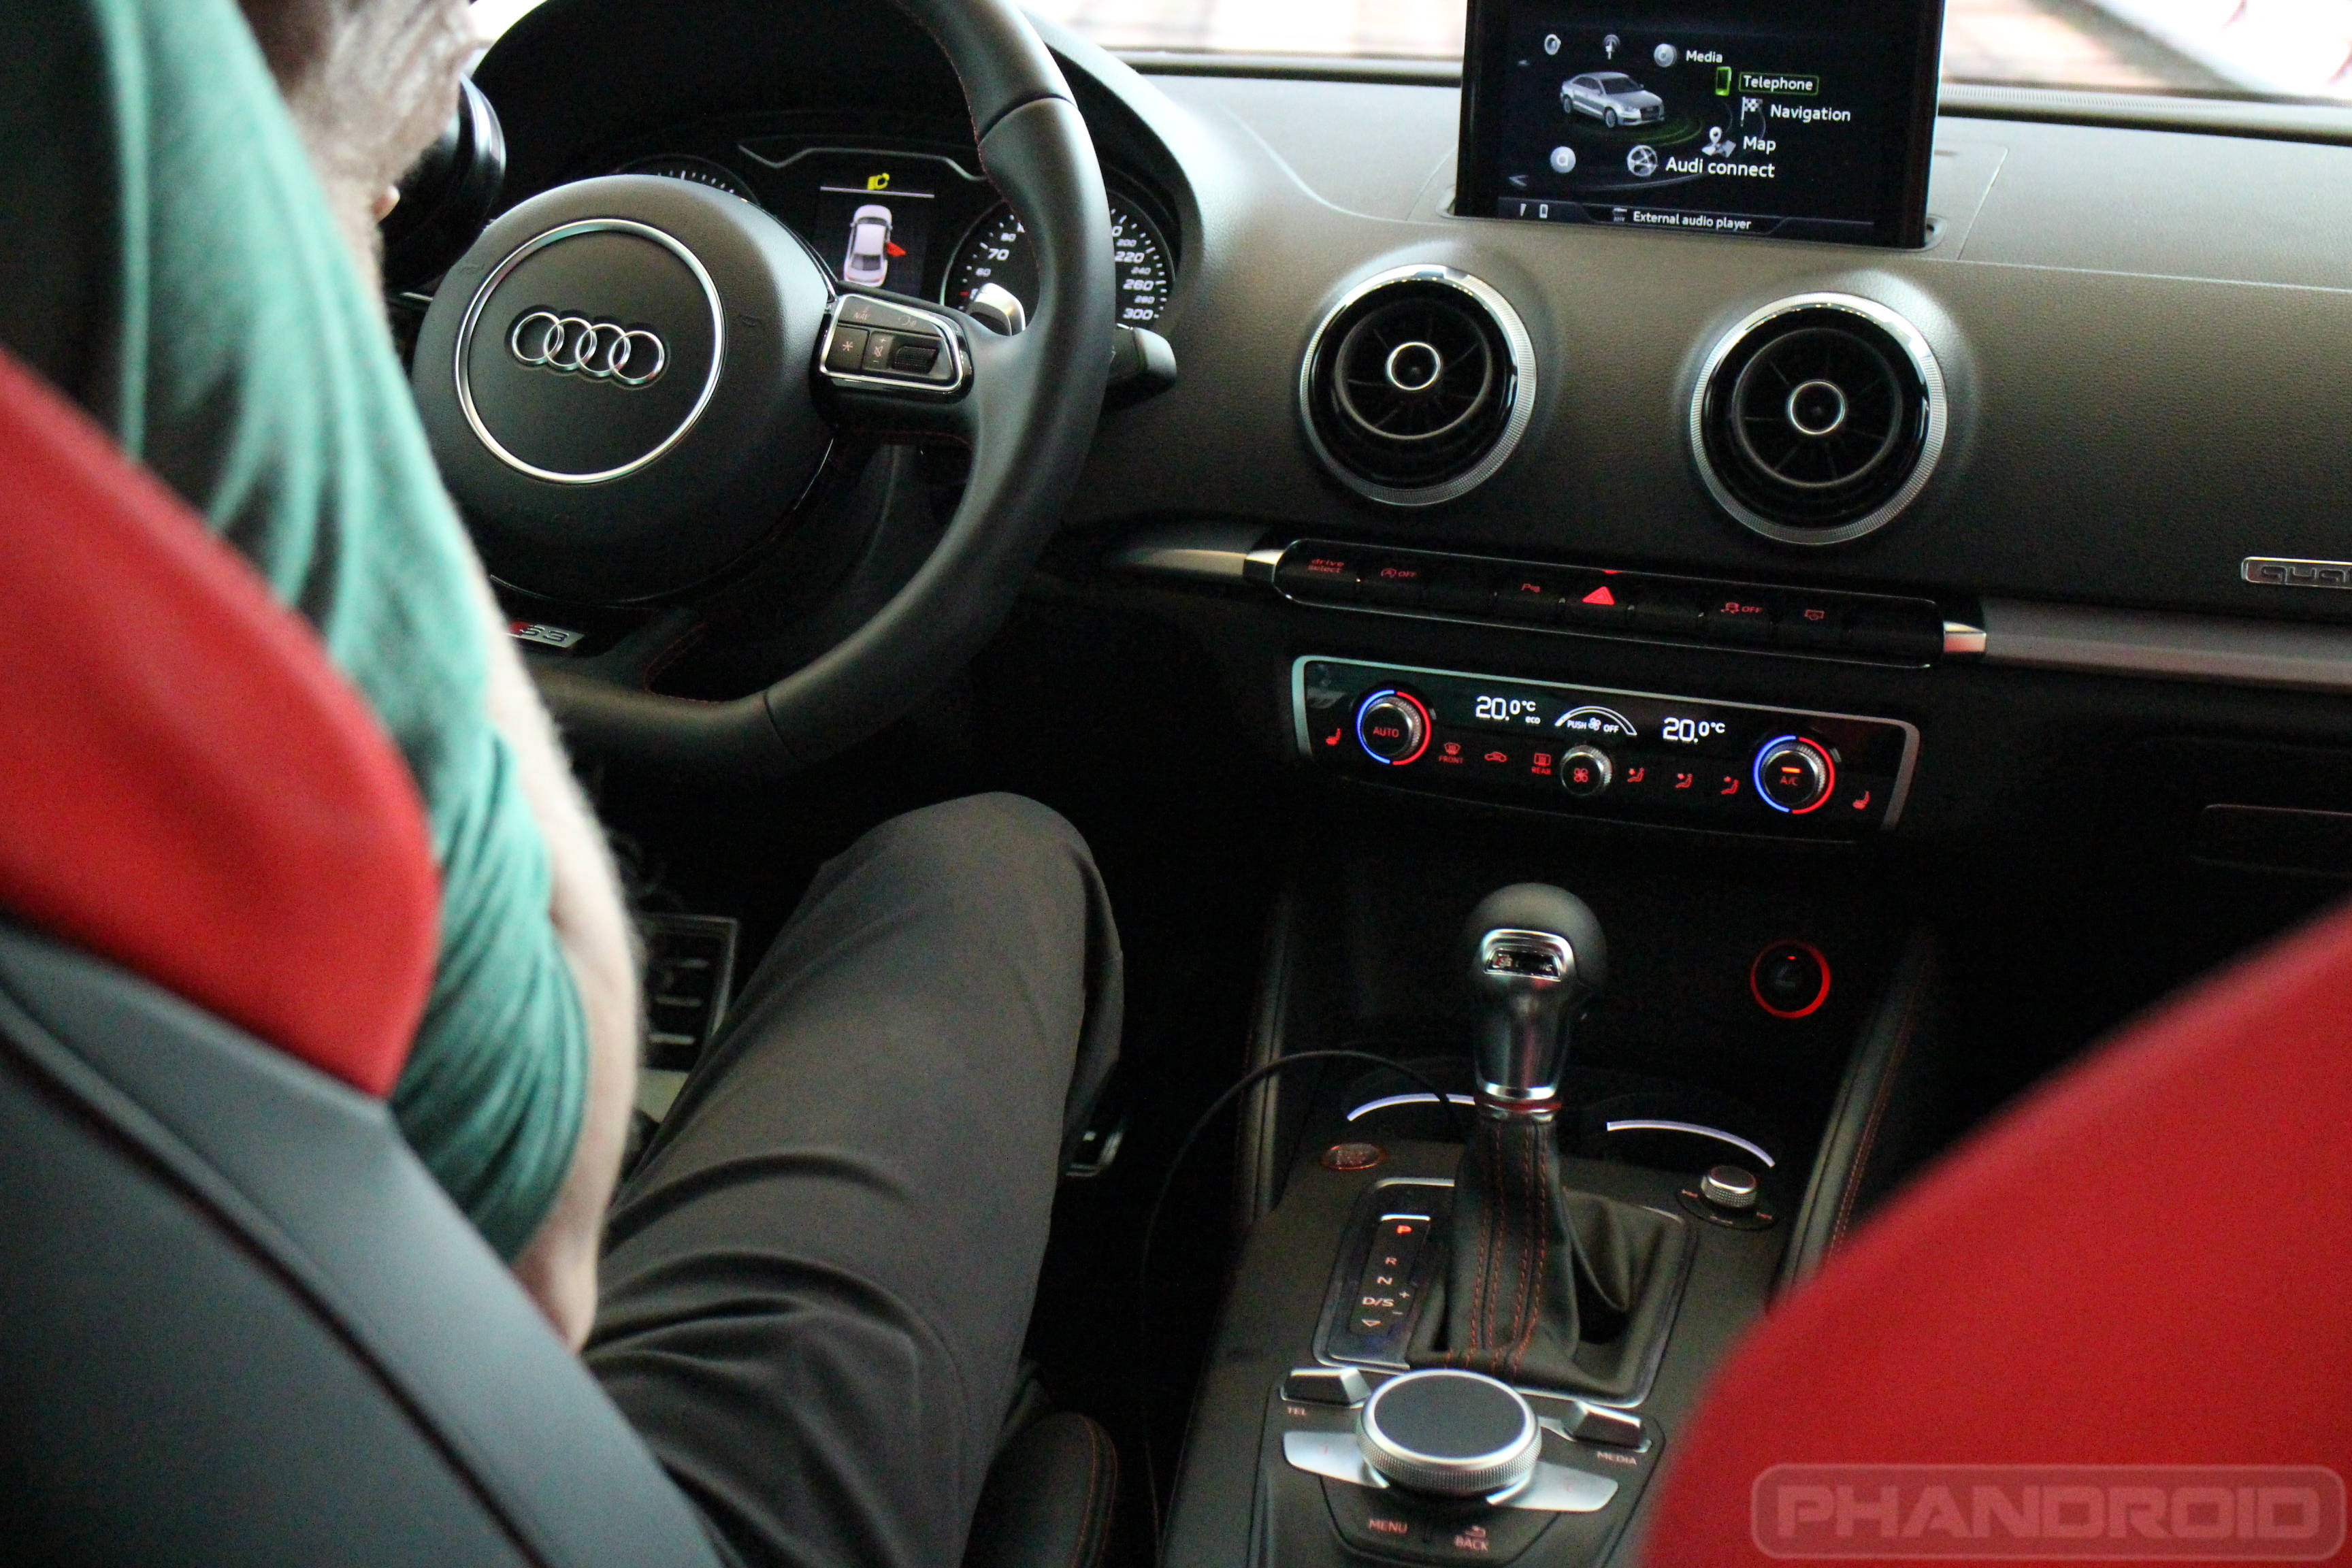 First Look Android Auto From Audi Chevy Honda And More